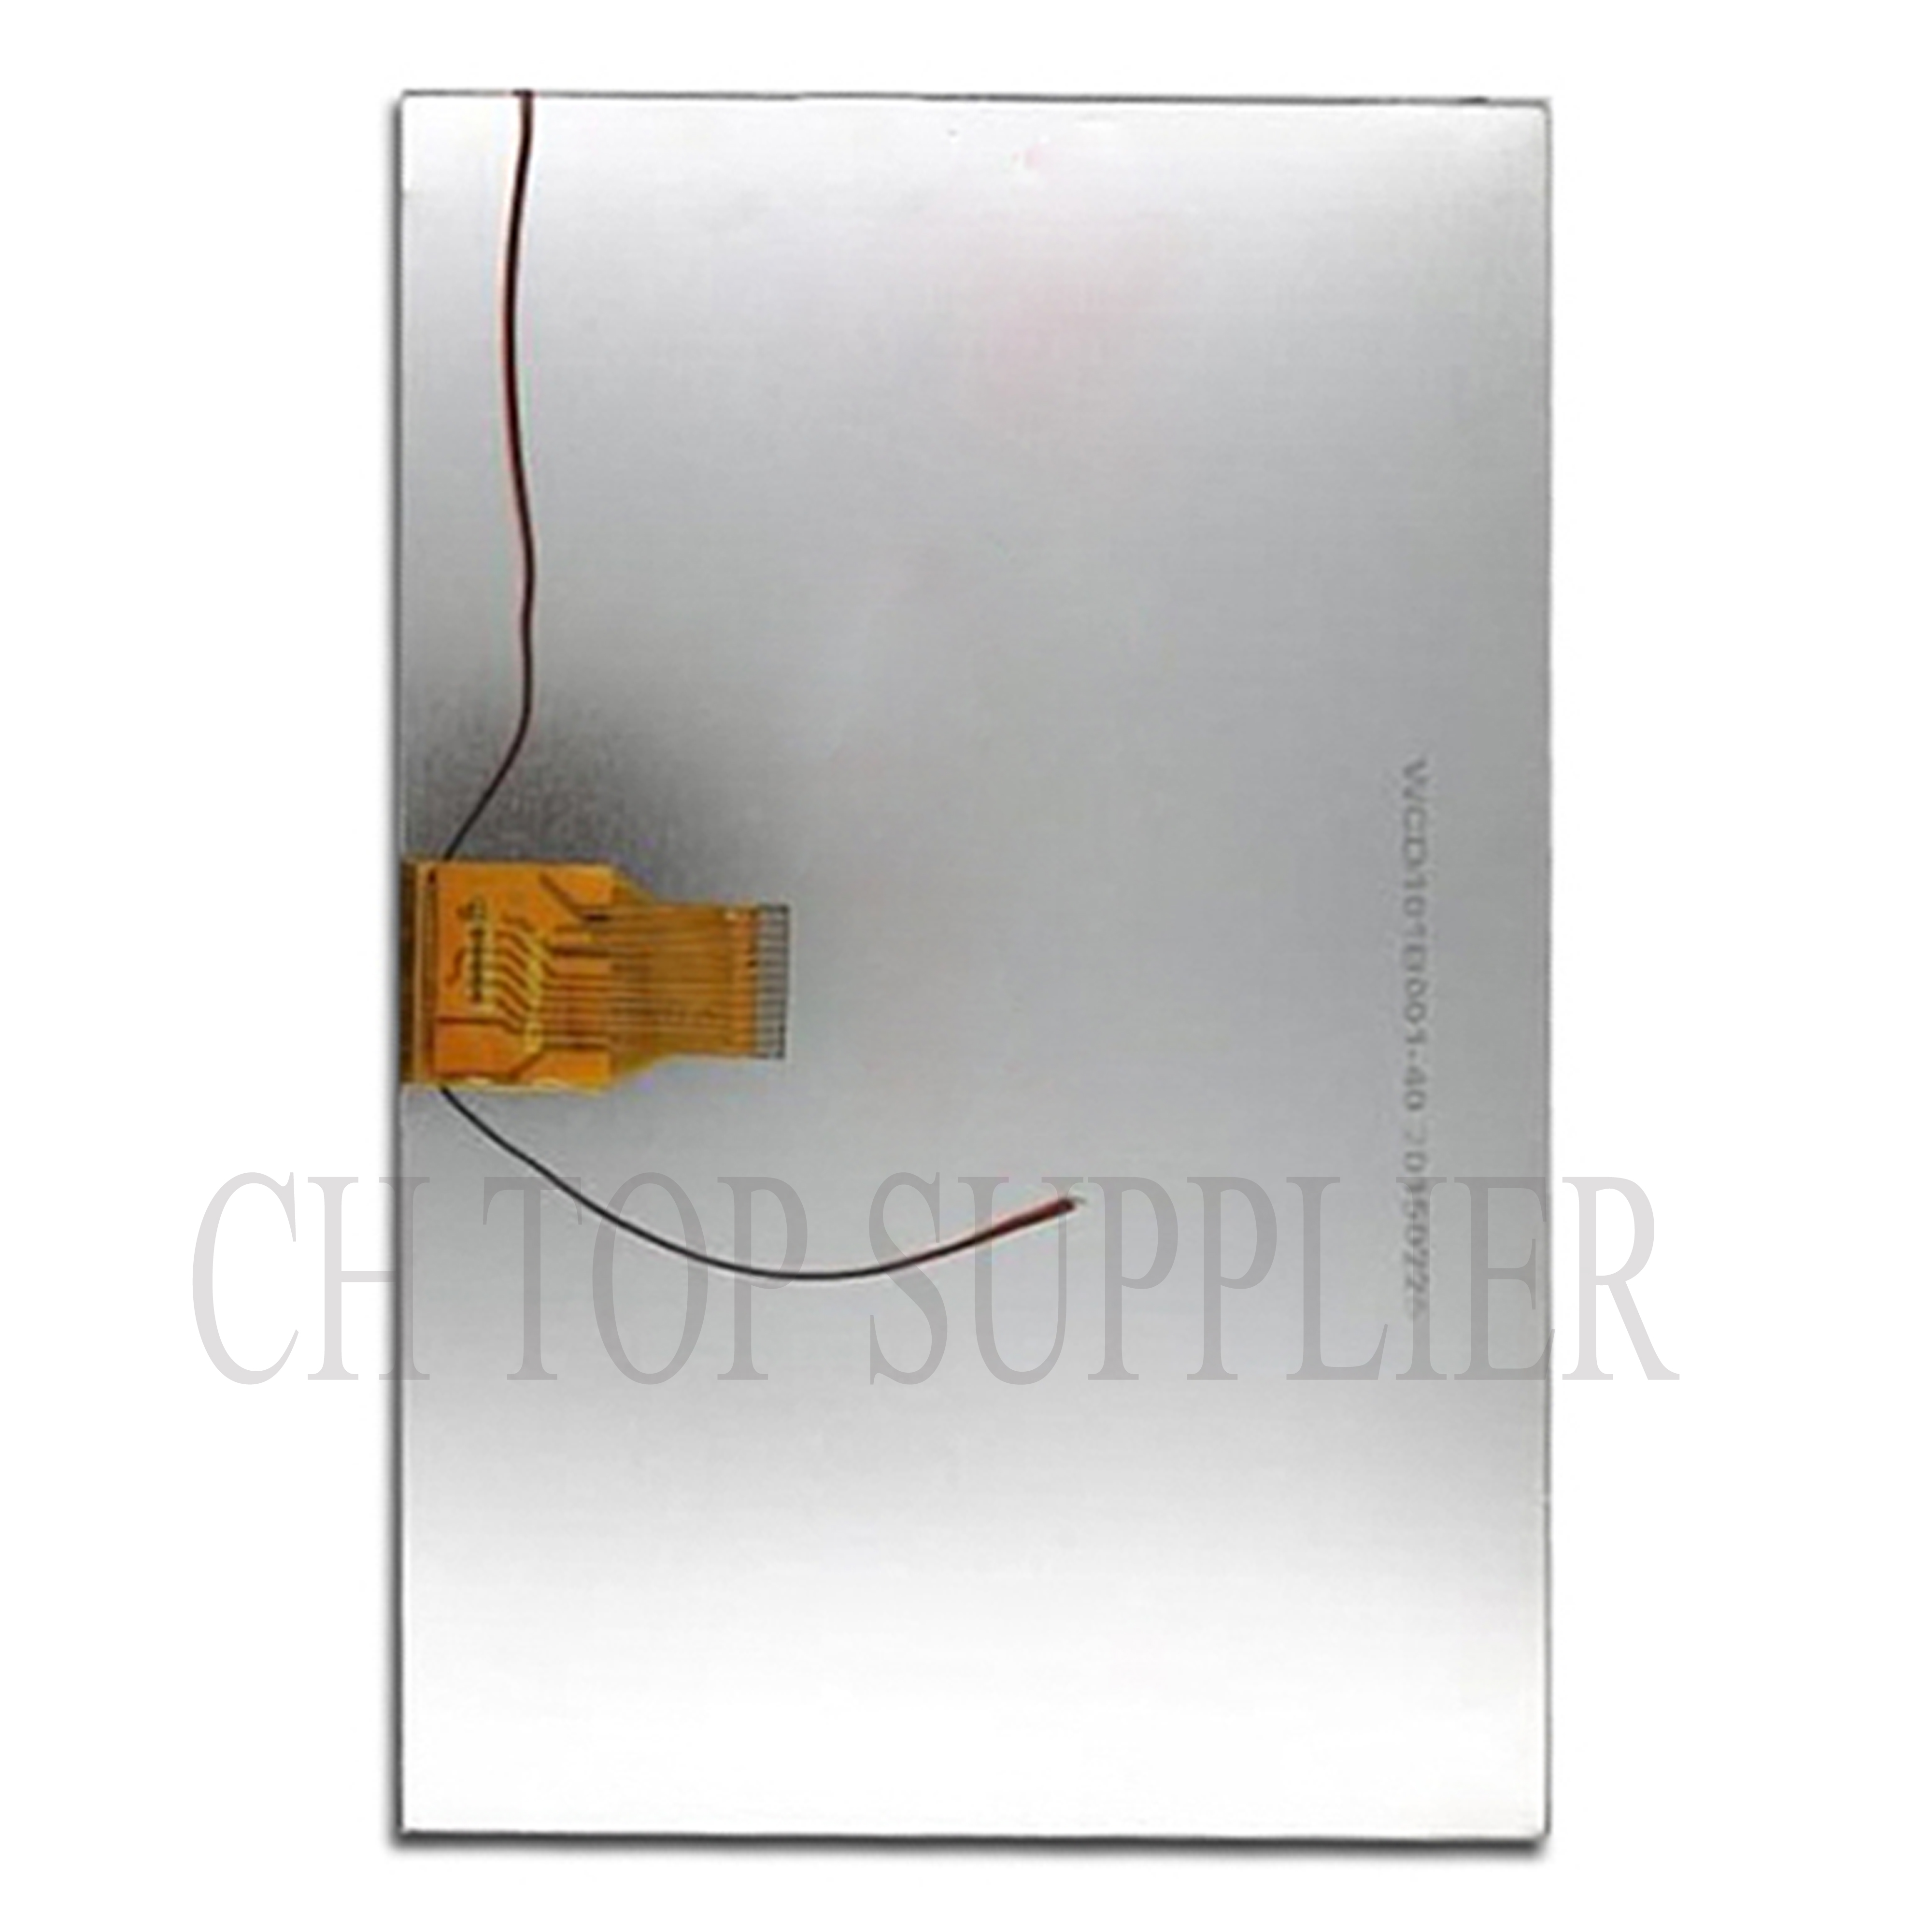 free shipping 10.1 inch 40PIN 1024x600 For lenovo A101 tablet LCD screen T10140B-A3 WD display with the original free shipping original 9 inch lcd screen claa102na0acw 30 pin